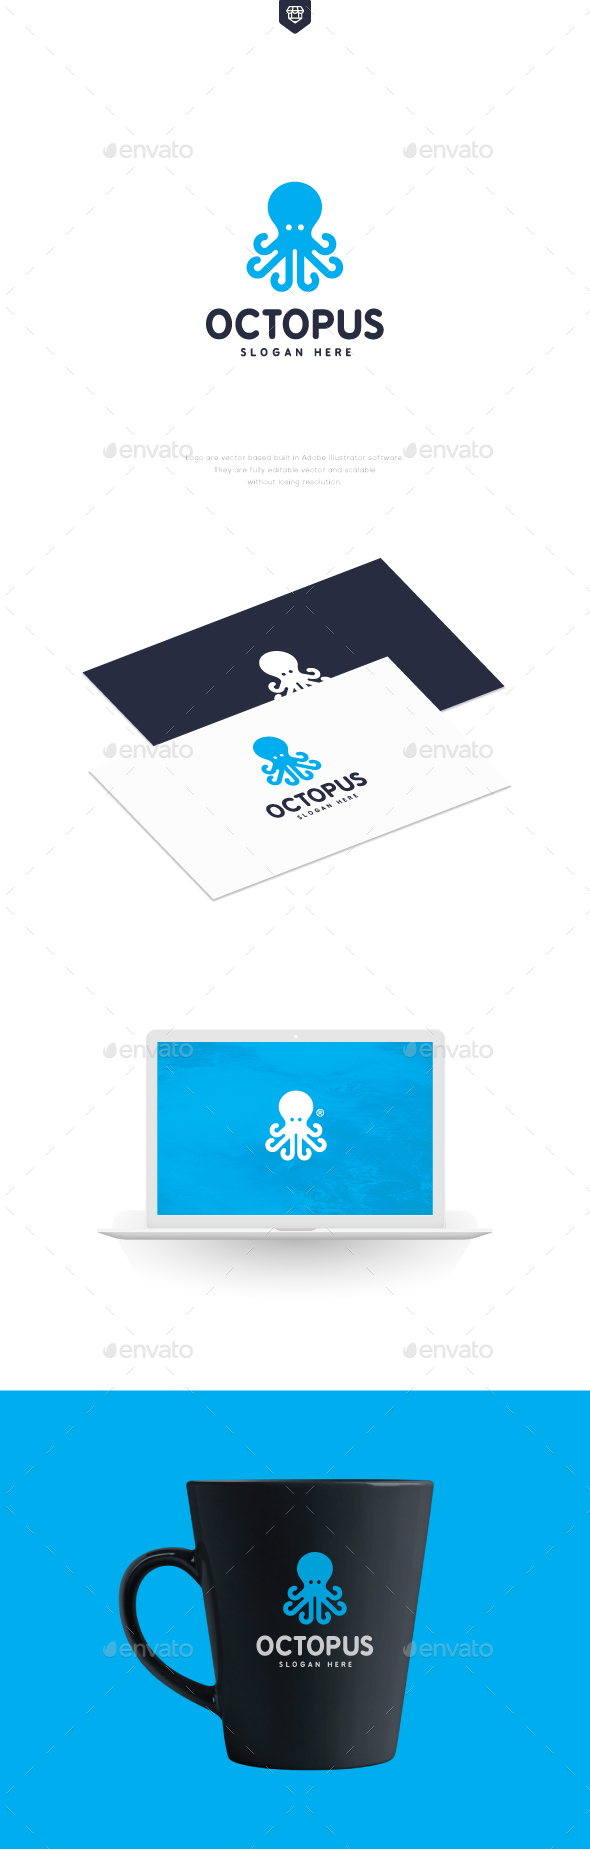 Abstract Octopus Logo - Animals Logo Templates